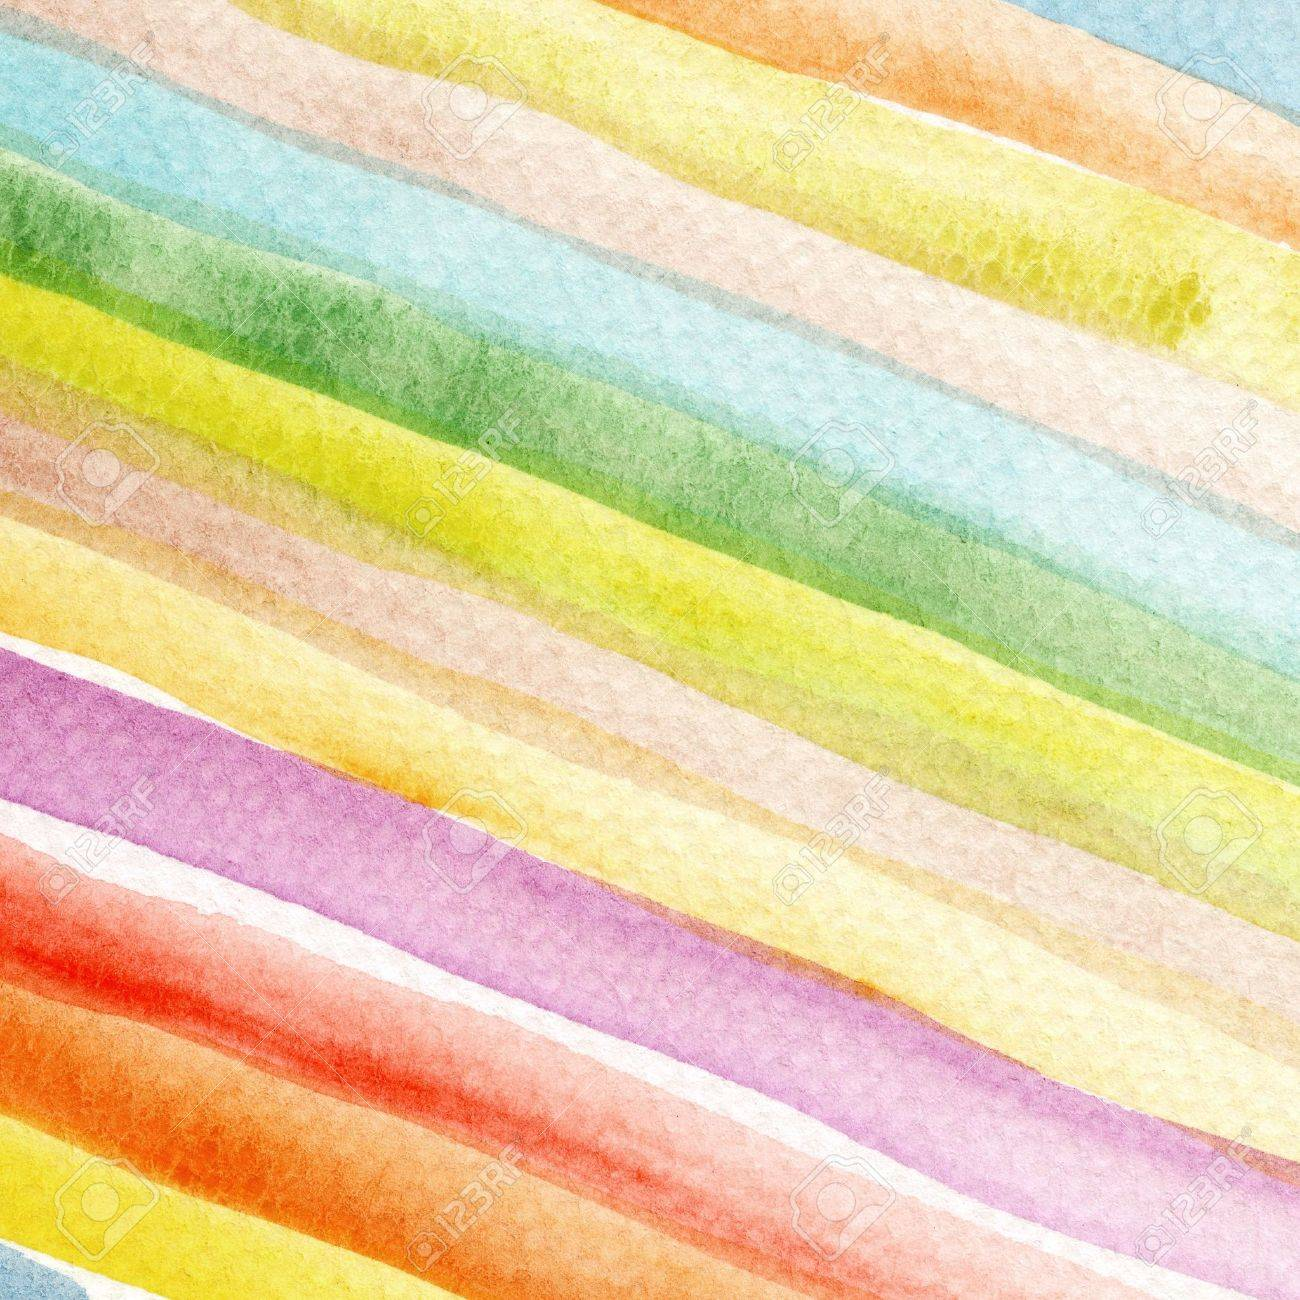 Watercolor art background, texture Stock Photo - 16334359